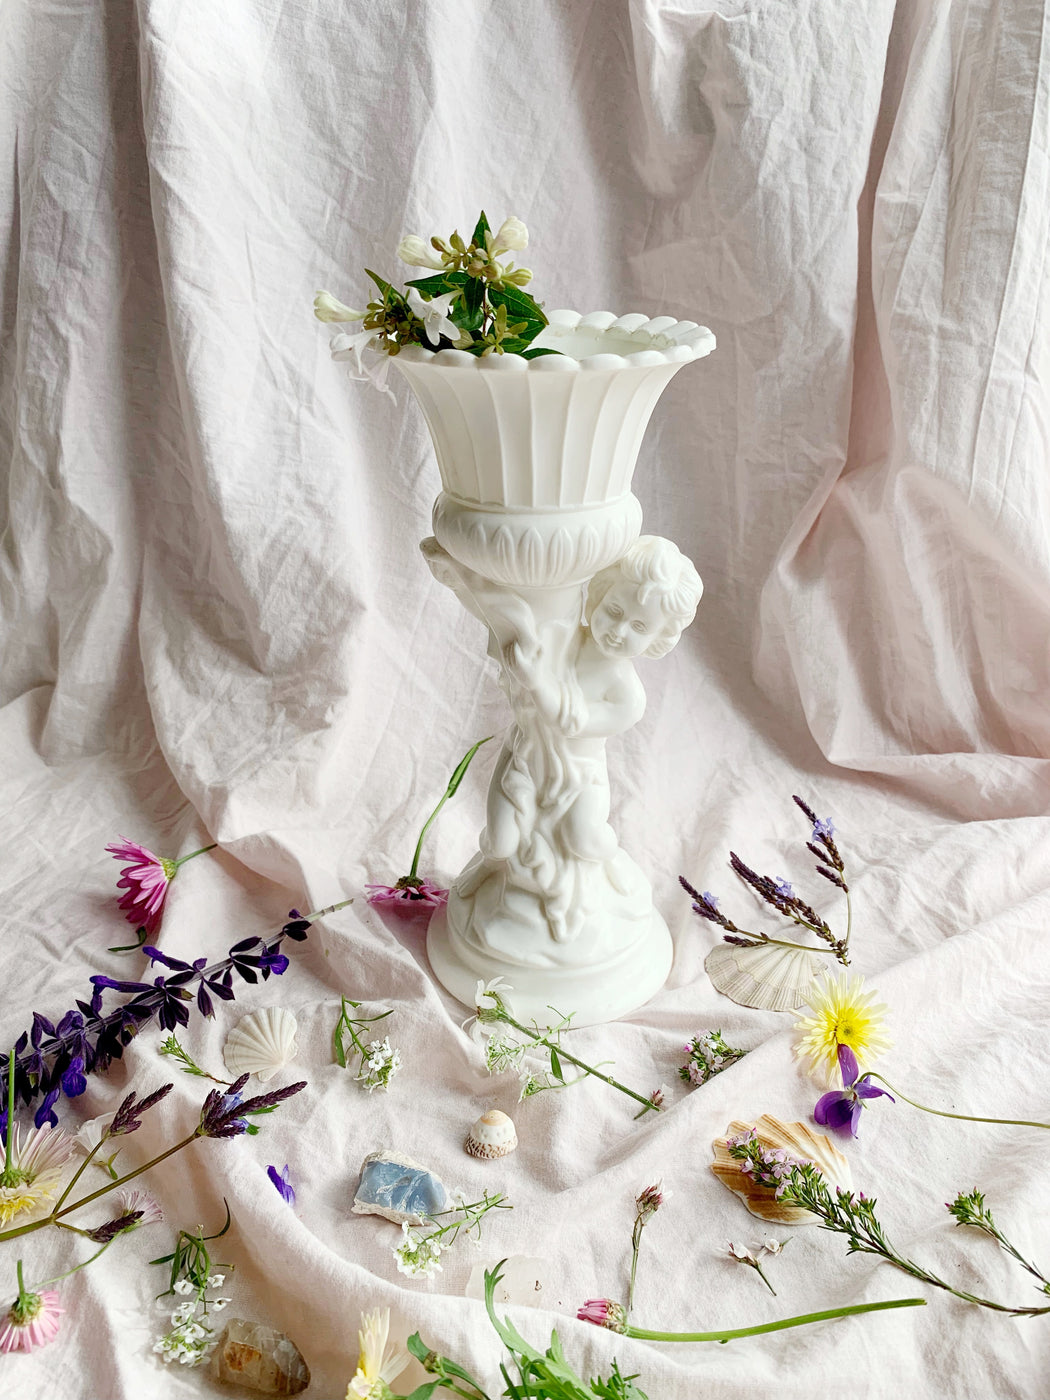 Plastic Cherub Plant Pot | Storytellers Workshop